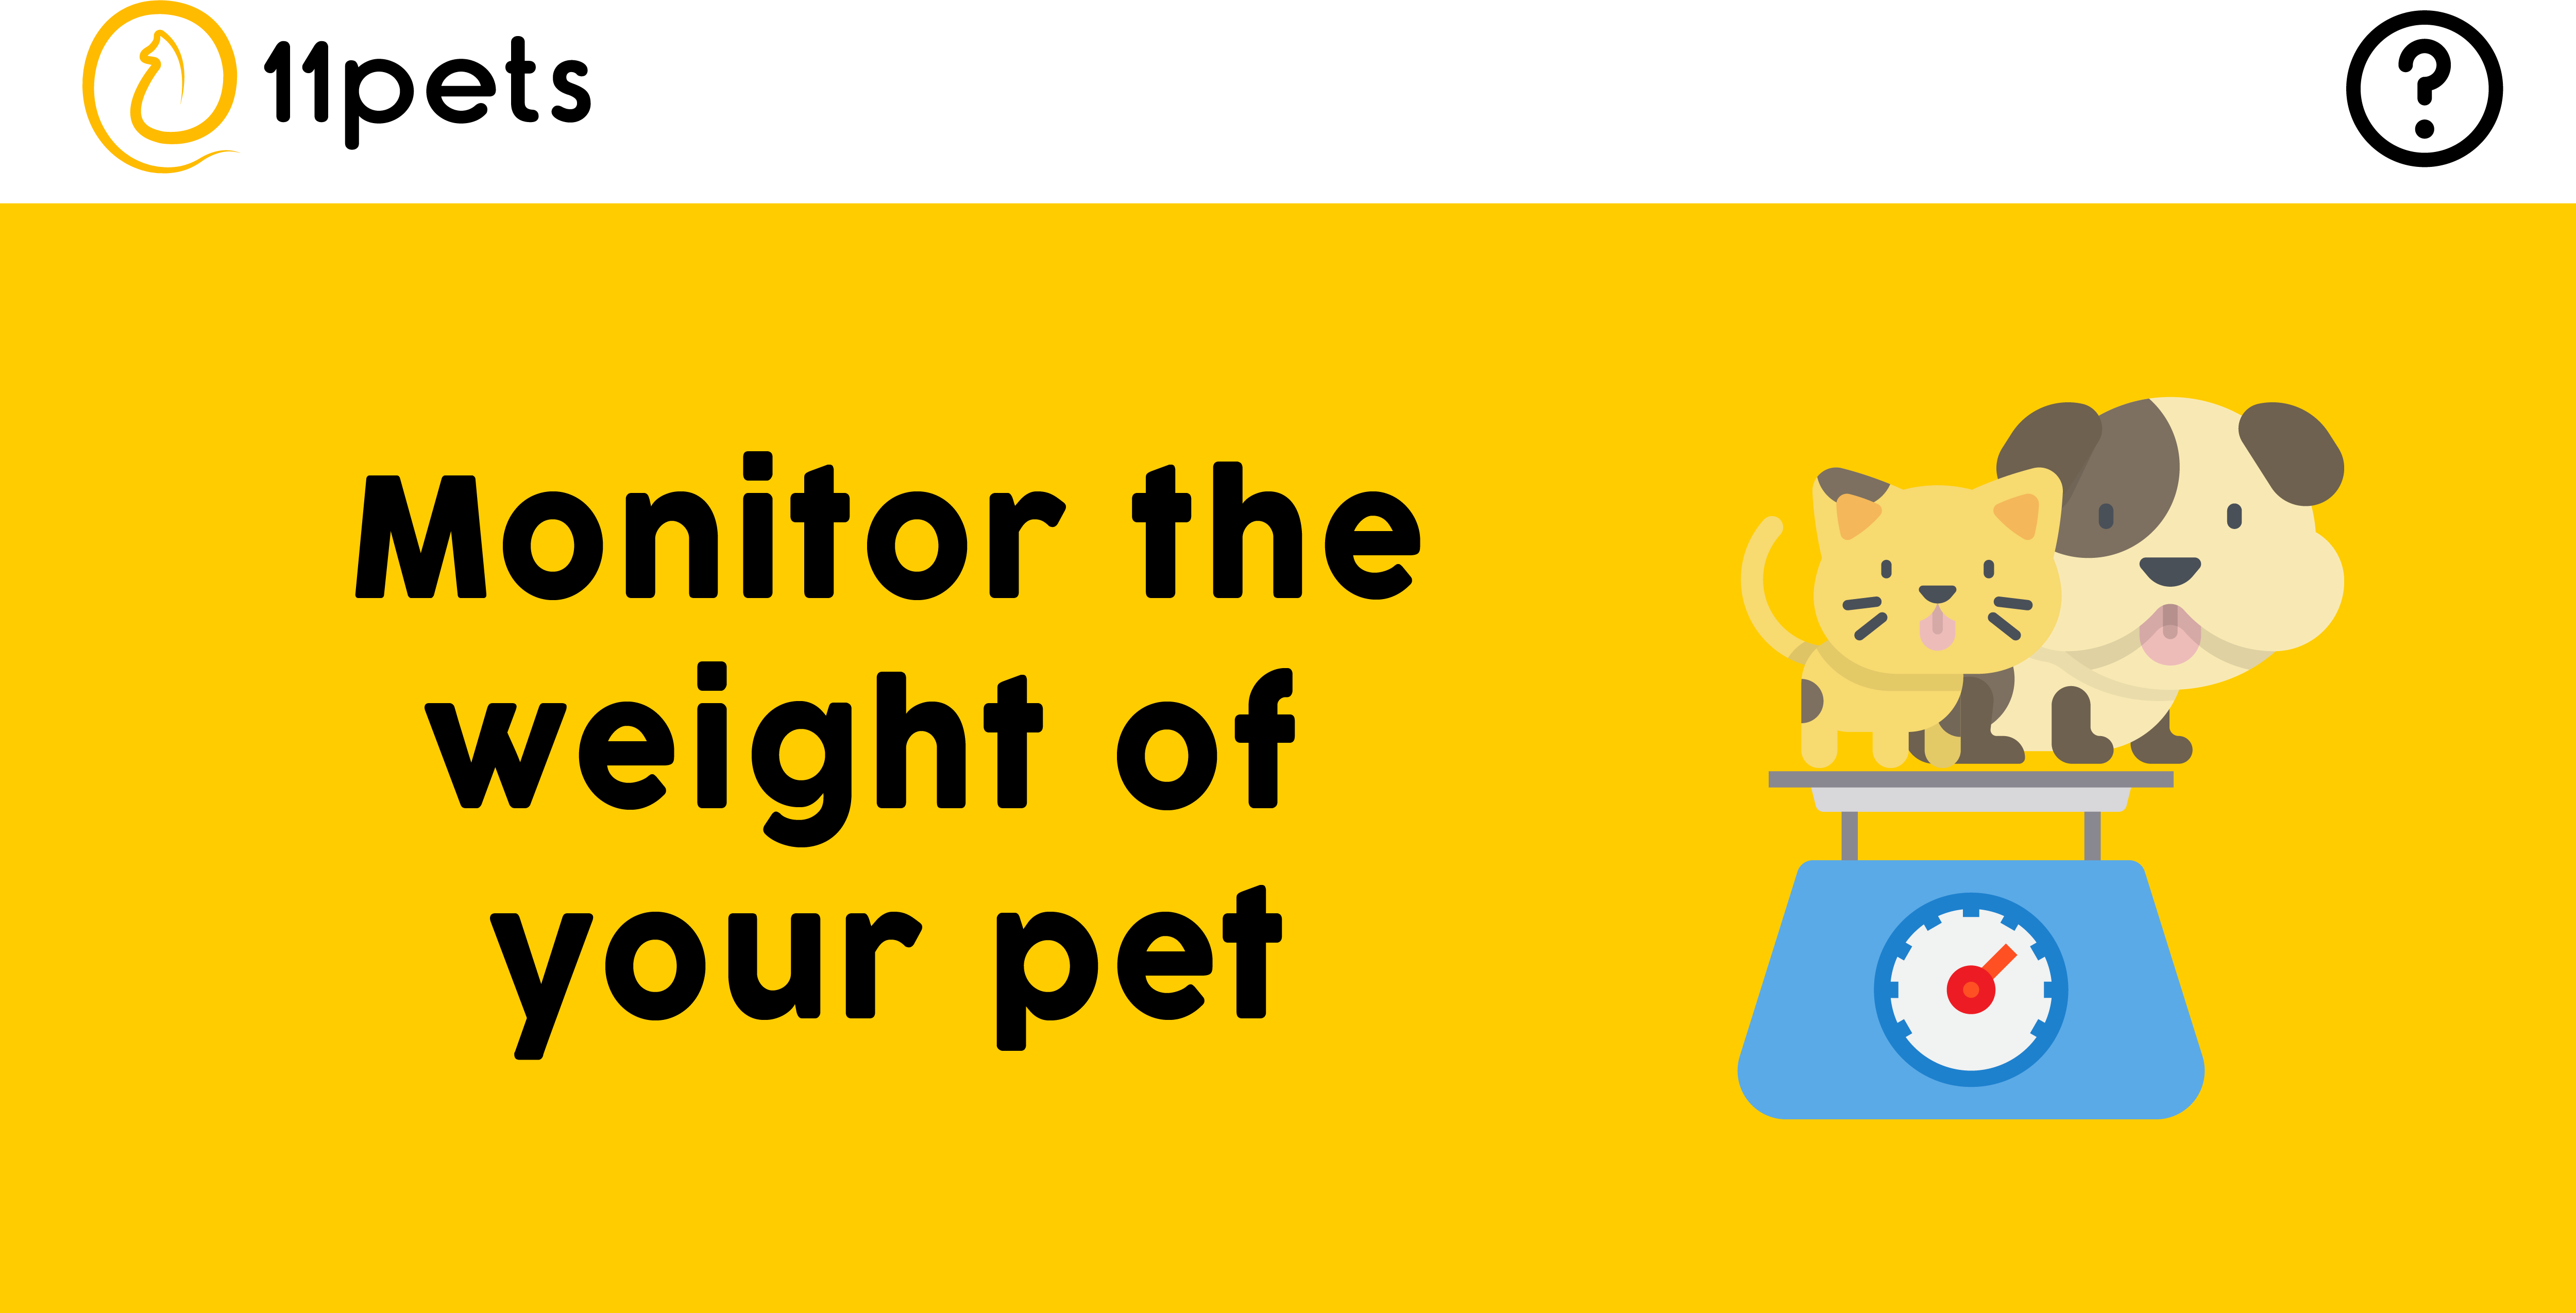 Monitor the weight of your pet